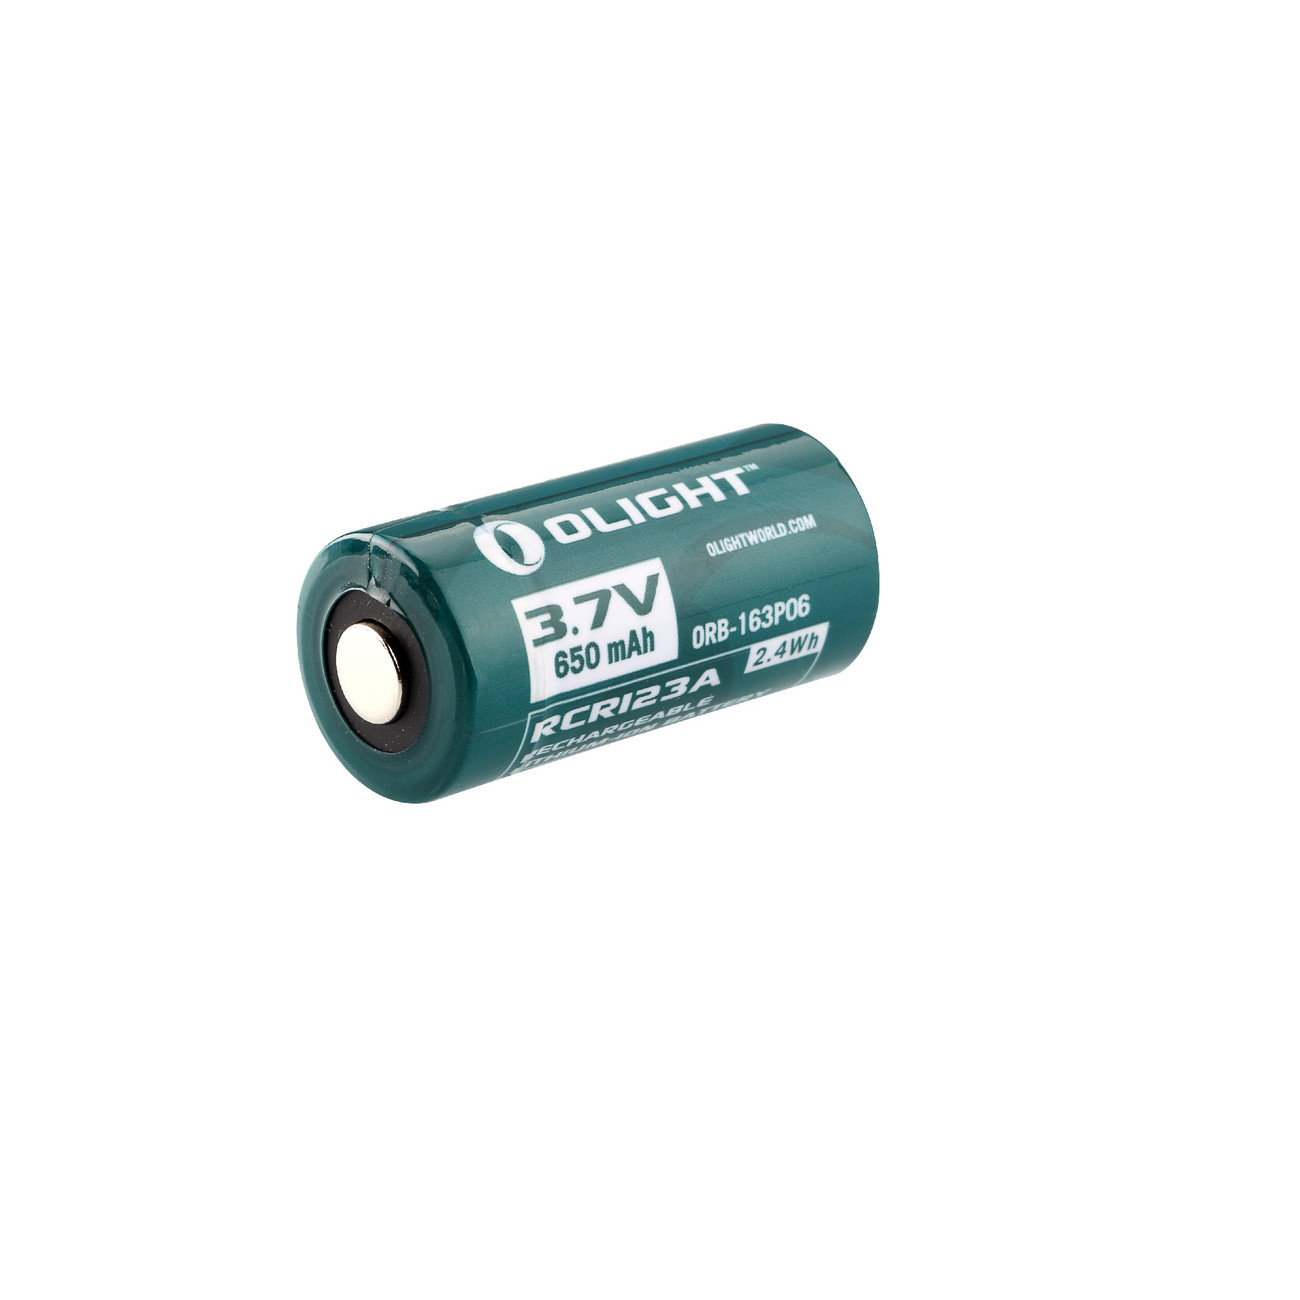 Olight Pin RCR123A 650mAh